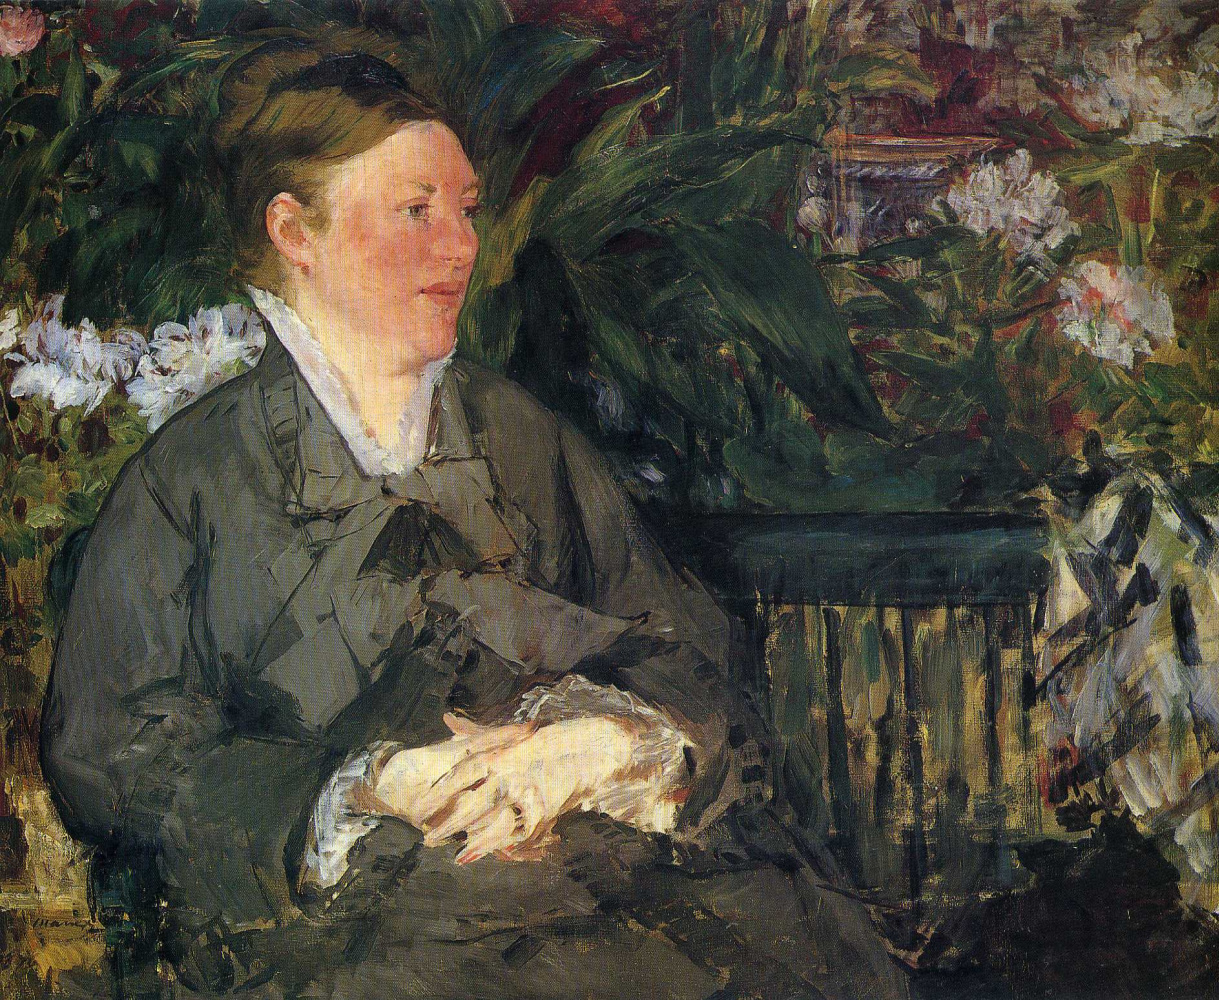 Edouard Manet. Madame Manet in the Conservatory